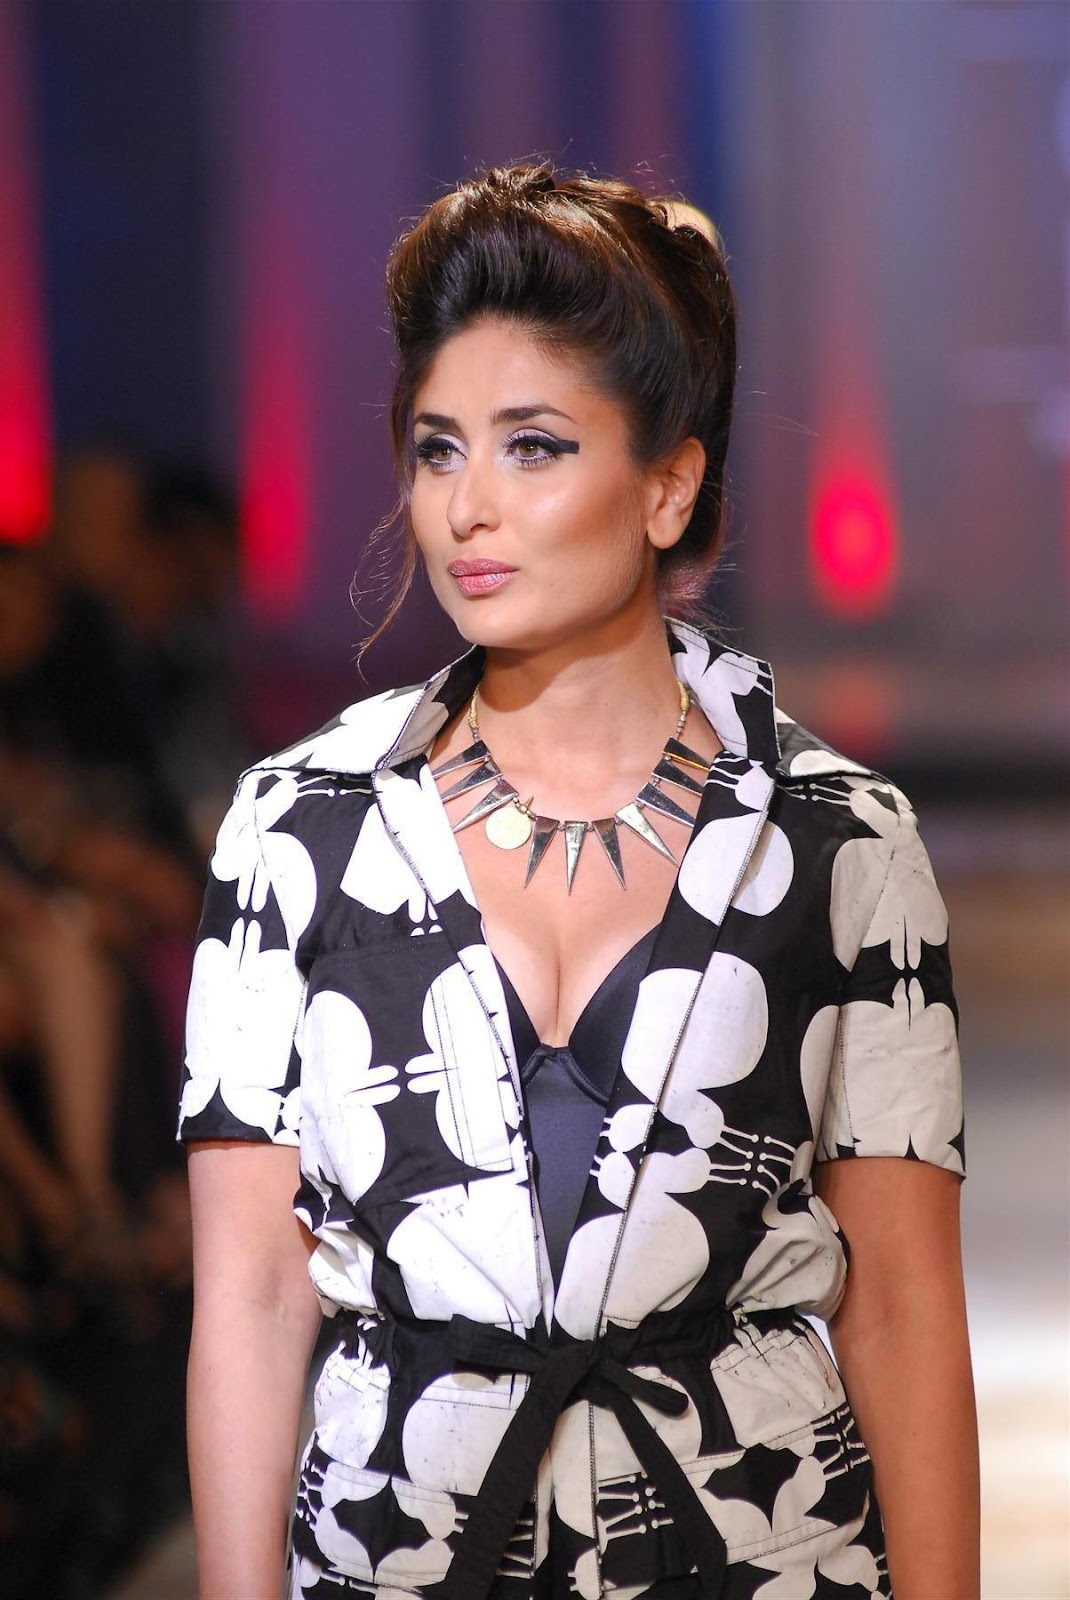 Kareena Kapoor Showcasing Her Cleavage At The Grand Finale Of Lakme Fashion Week 2012